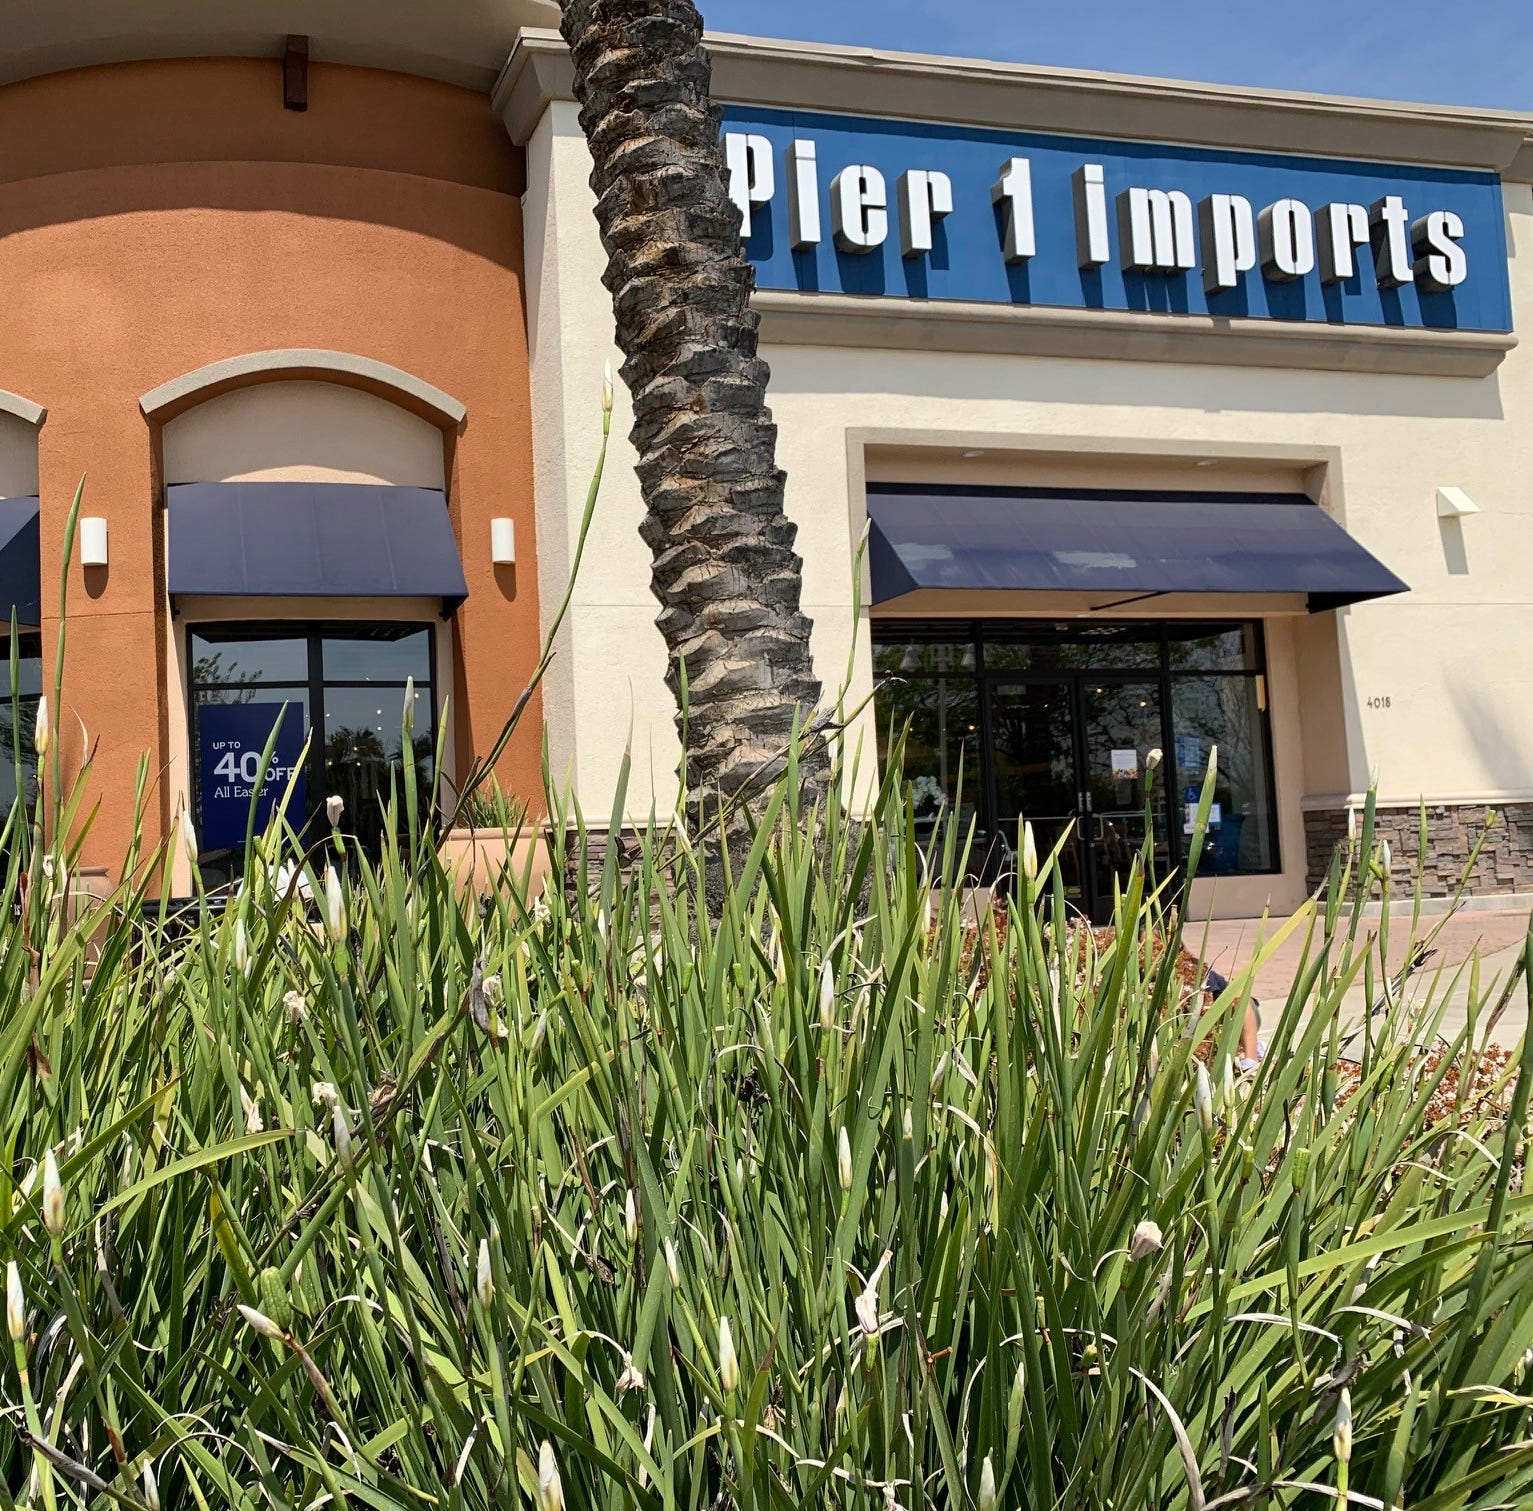 Pier 1 Imports could close up to 145 more stores